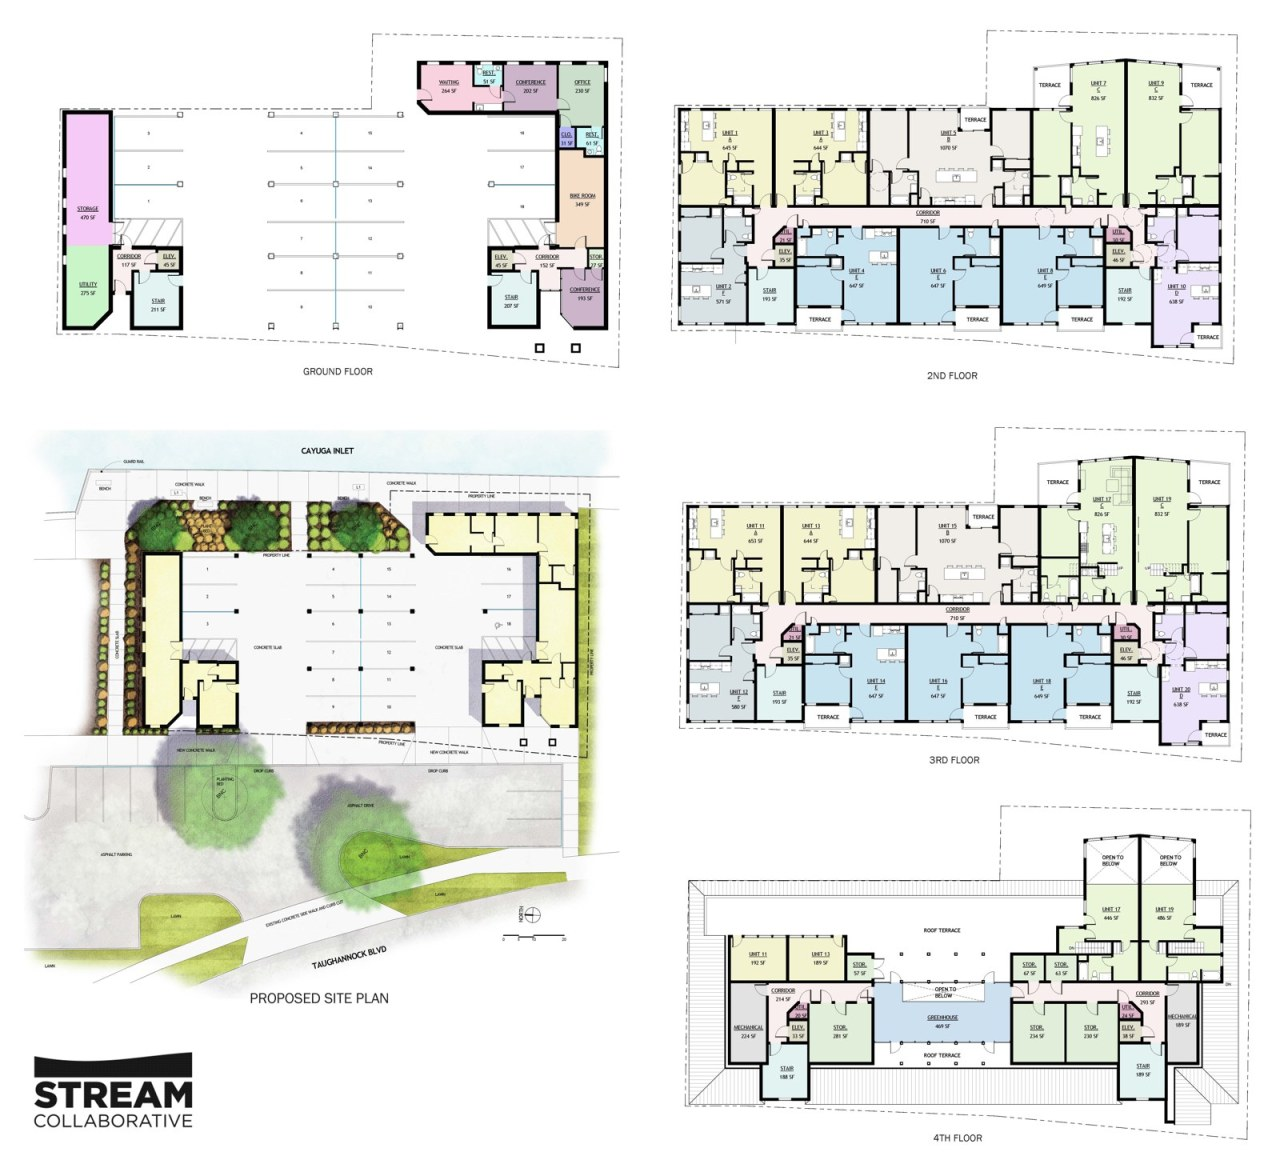 323 Taughannock Boulevard - Planning Board Presentation - 07-22-14_Page_15